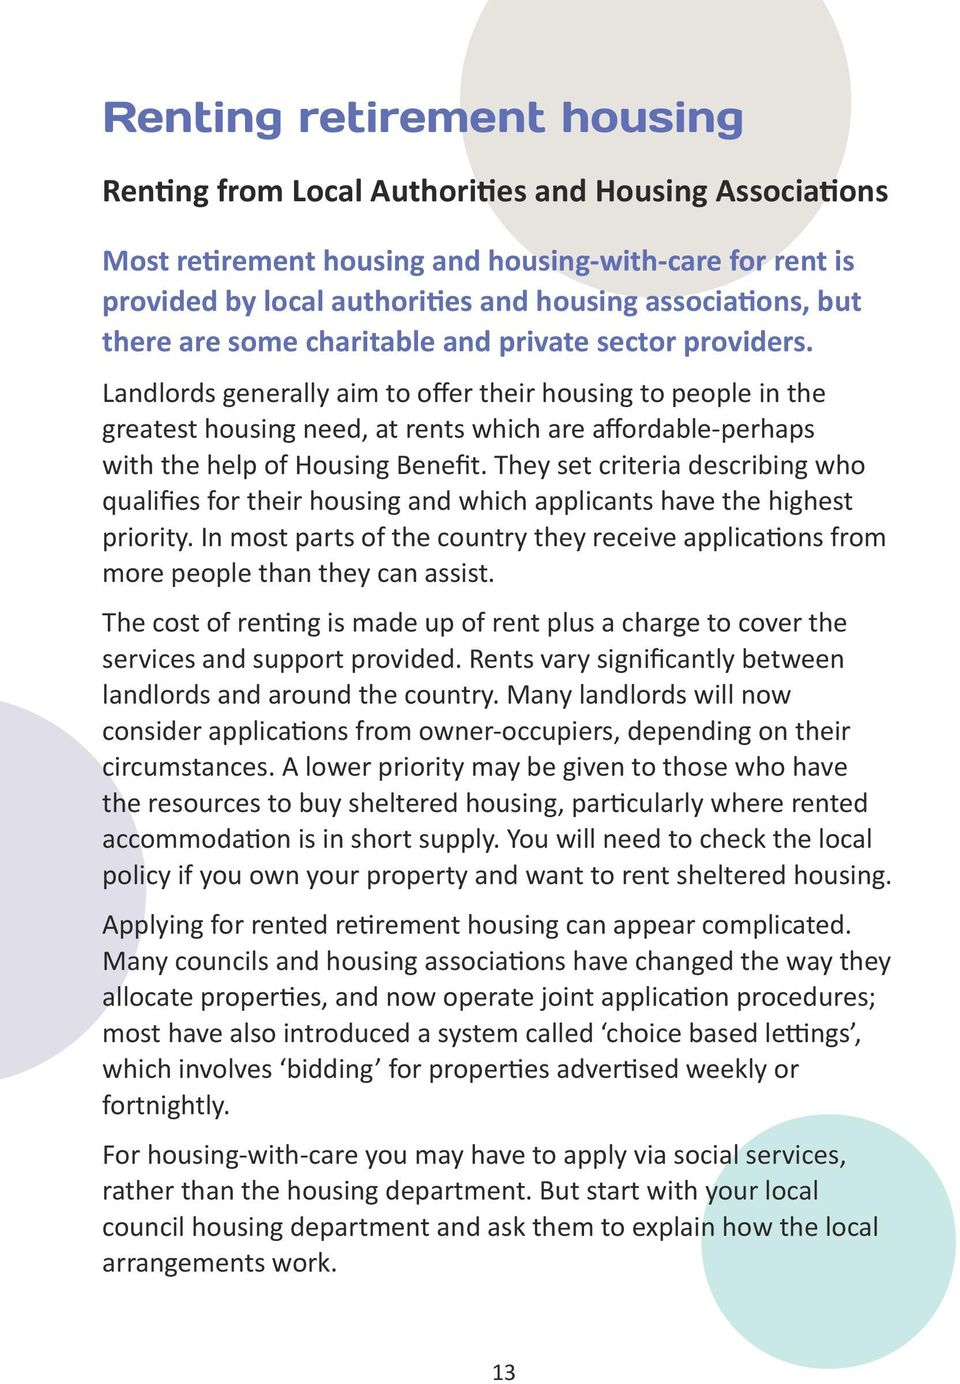 Landlords generally aim to offer their housing to people in the greatest housing need, at rents which are affordable-perhaps with the help of Housing Benefit.